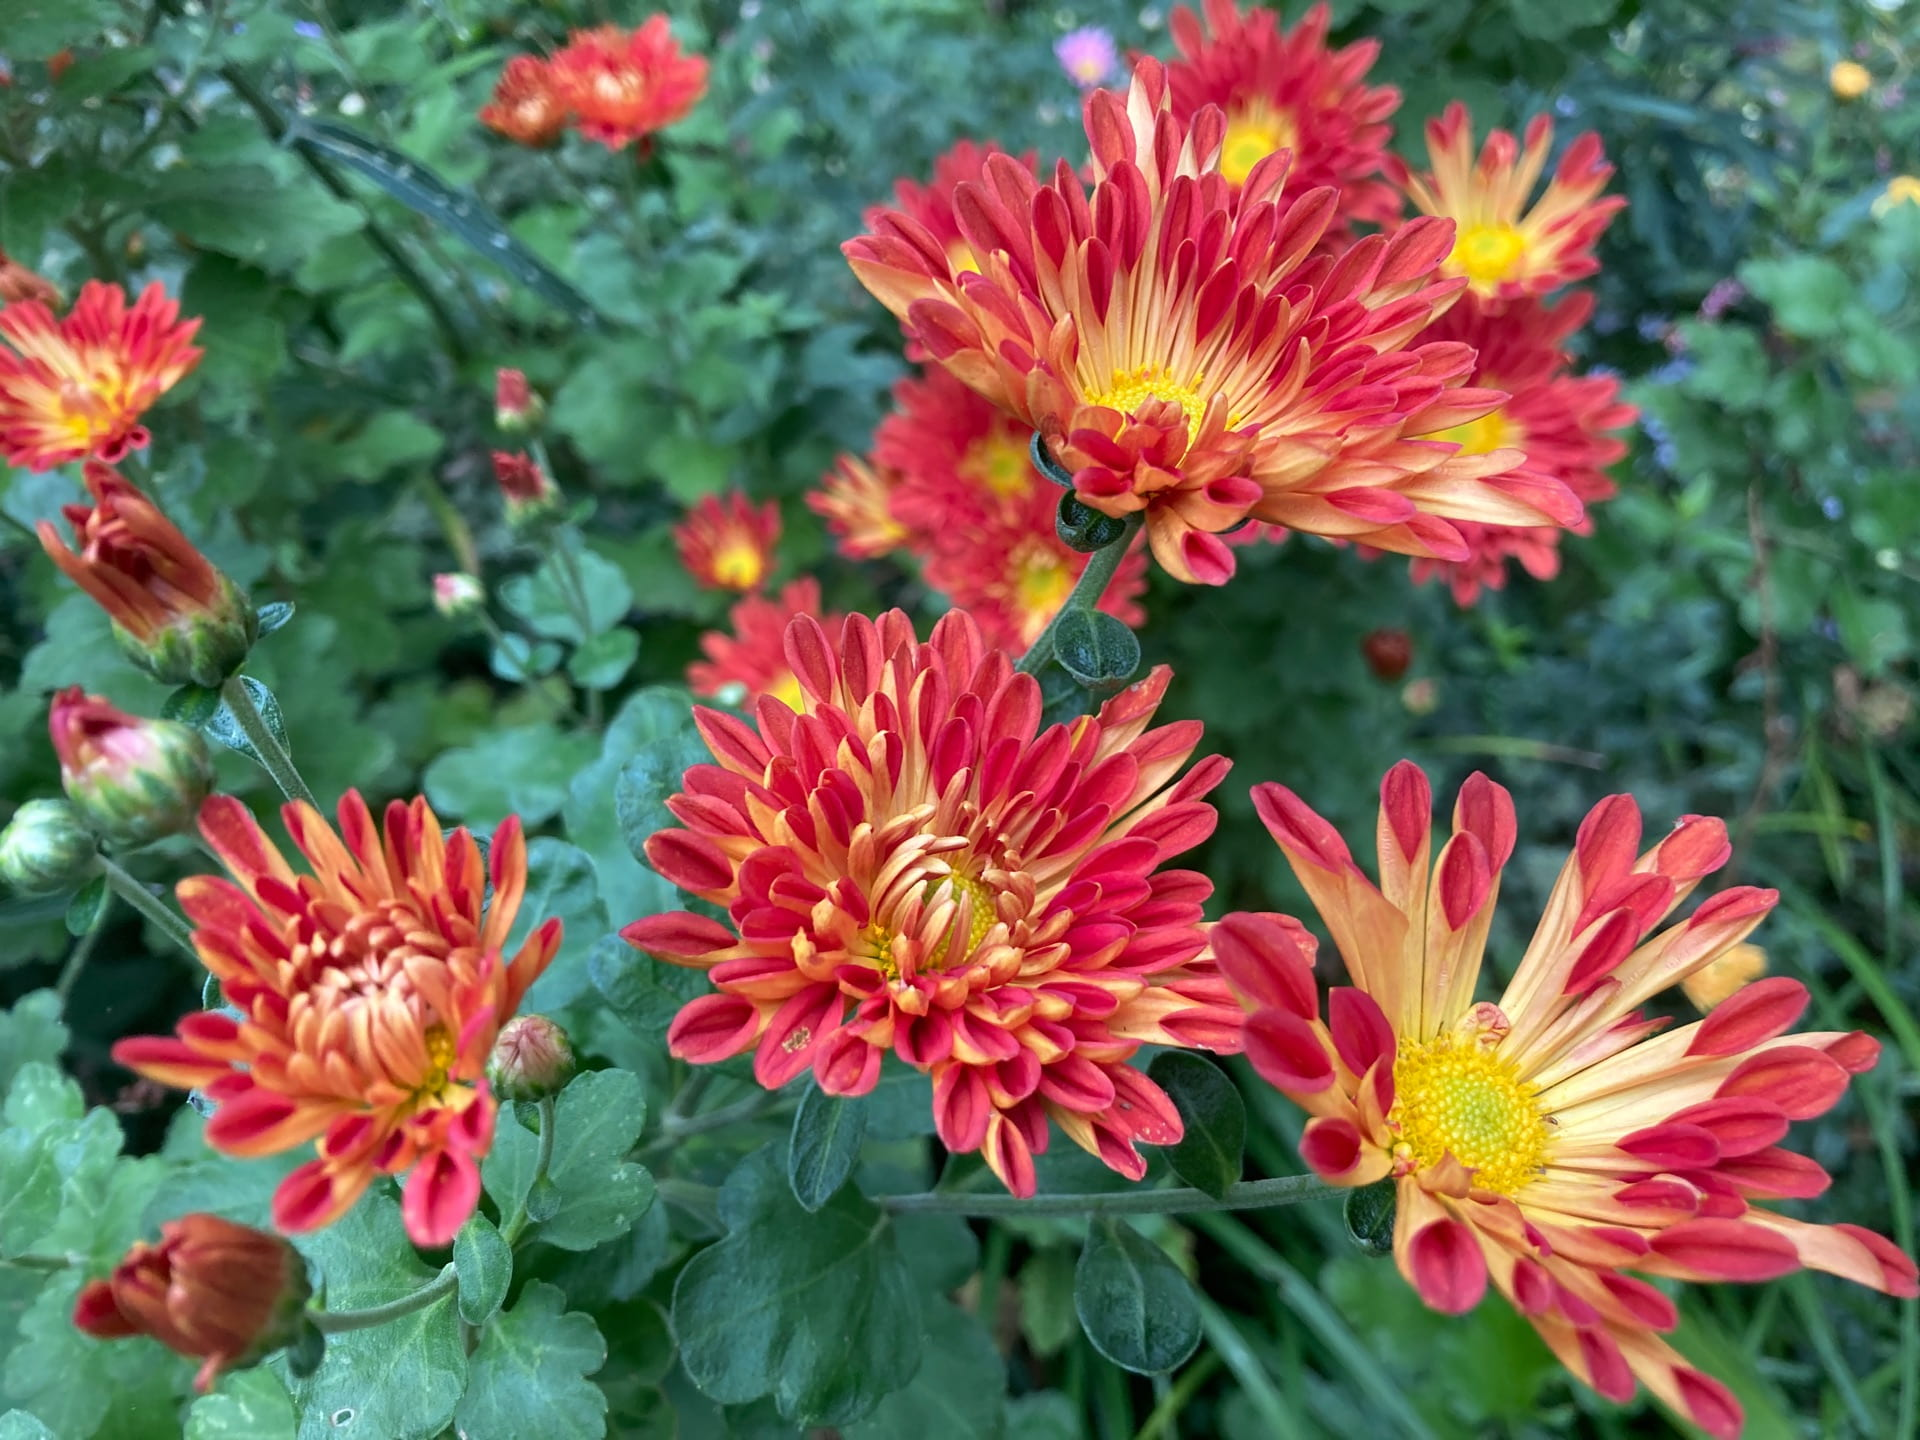 This Chrysanthemum with spooned and quilled petals contains a spectrum of fall colors.